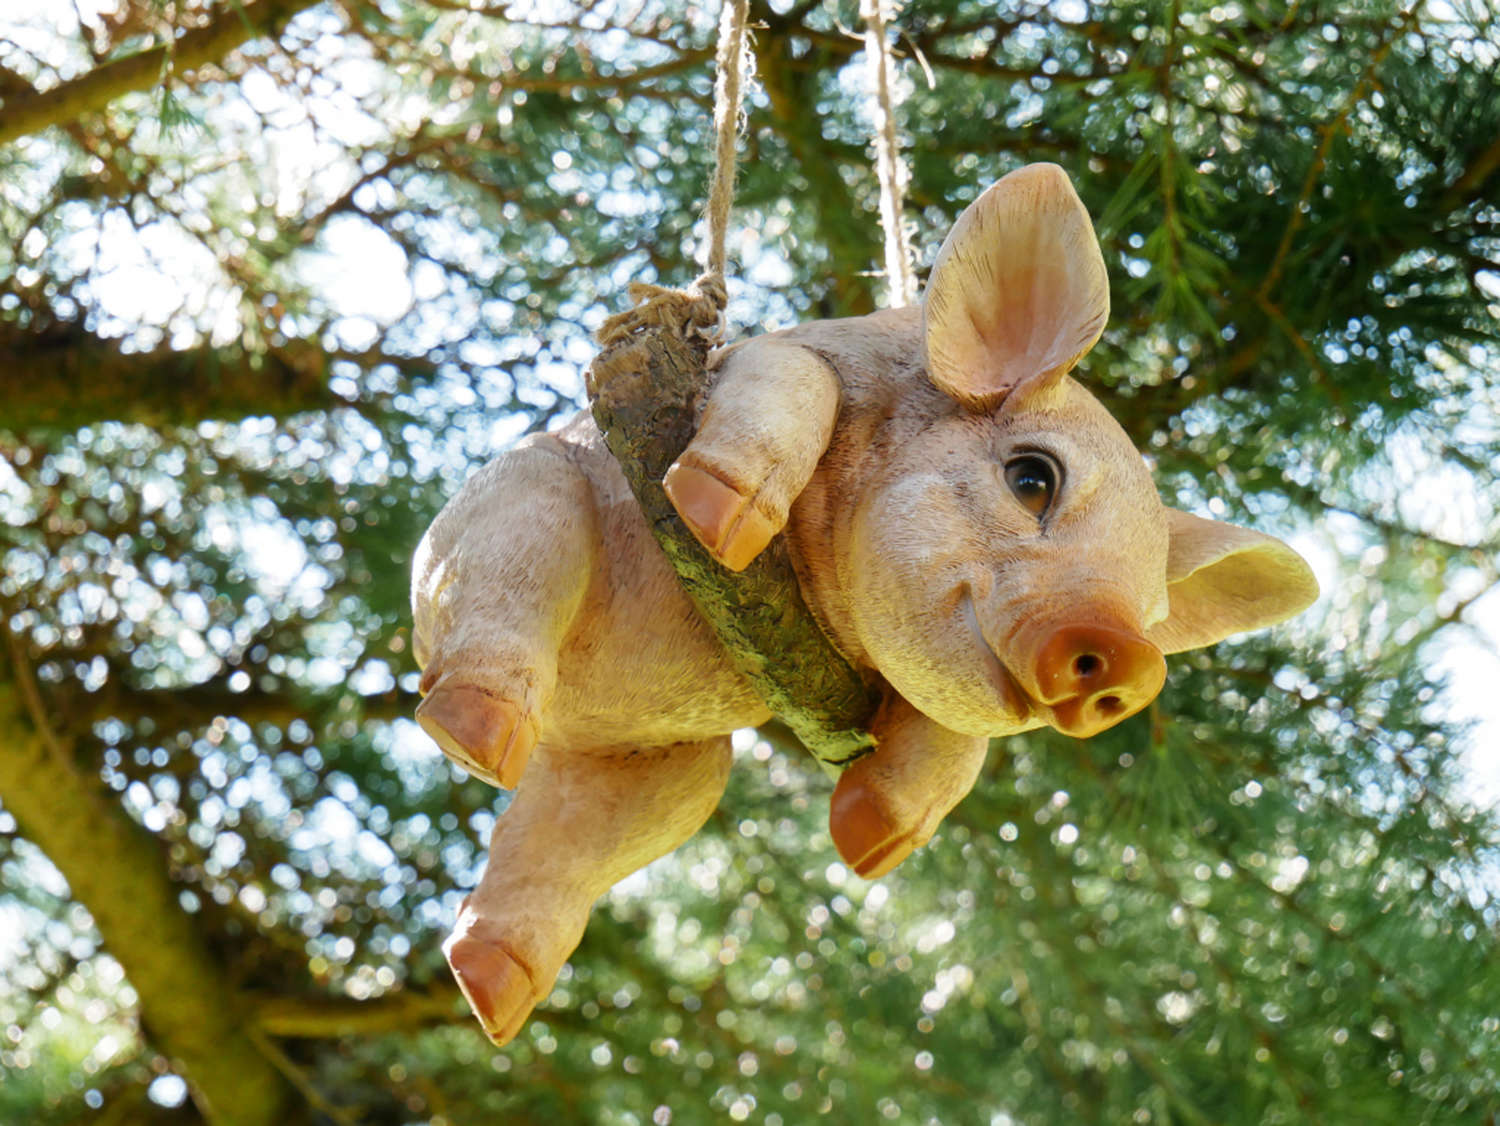 Hanging Pig on a rope swing